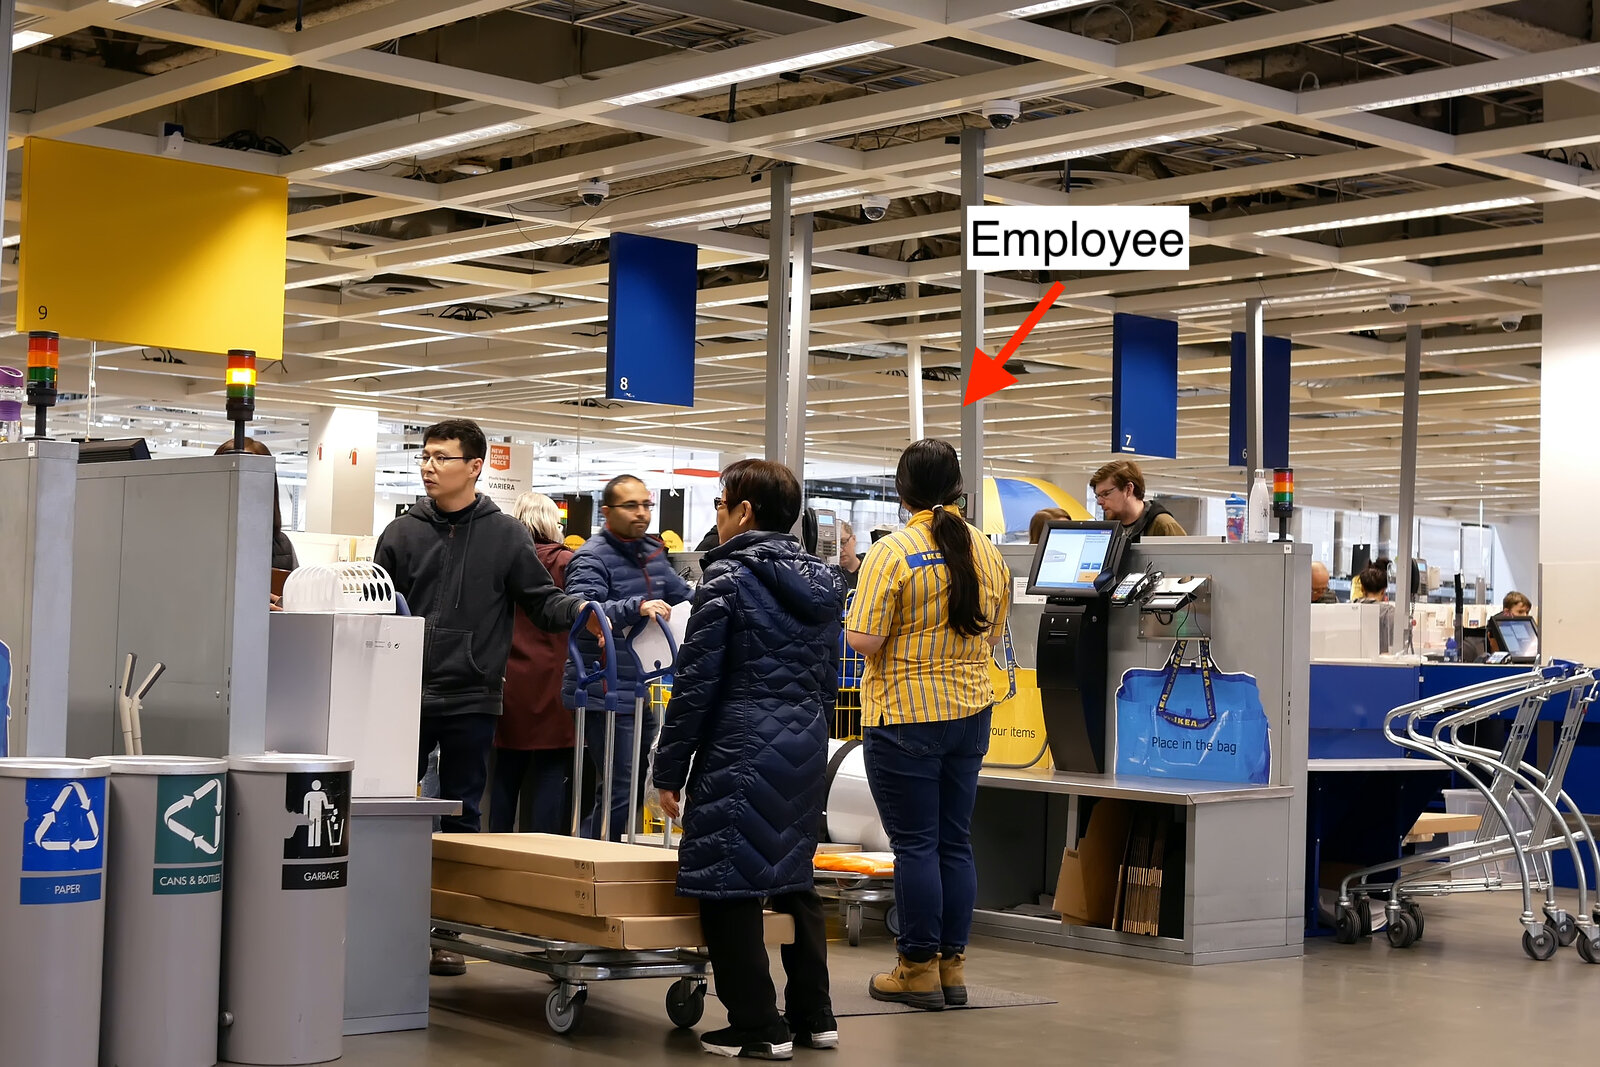 An Ikea employee stands ready to help customers in the self-checkout line.